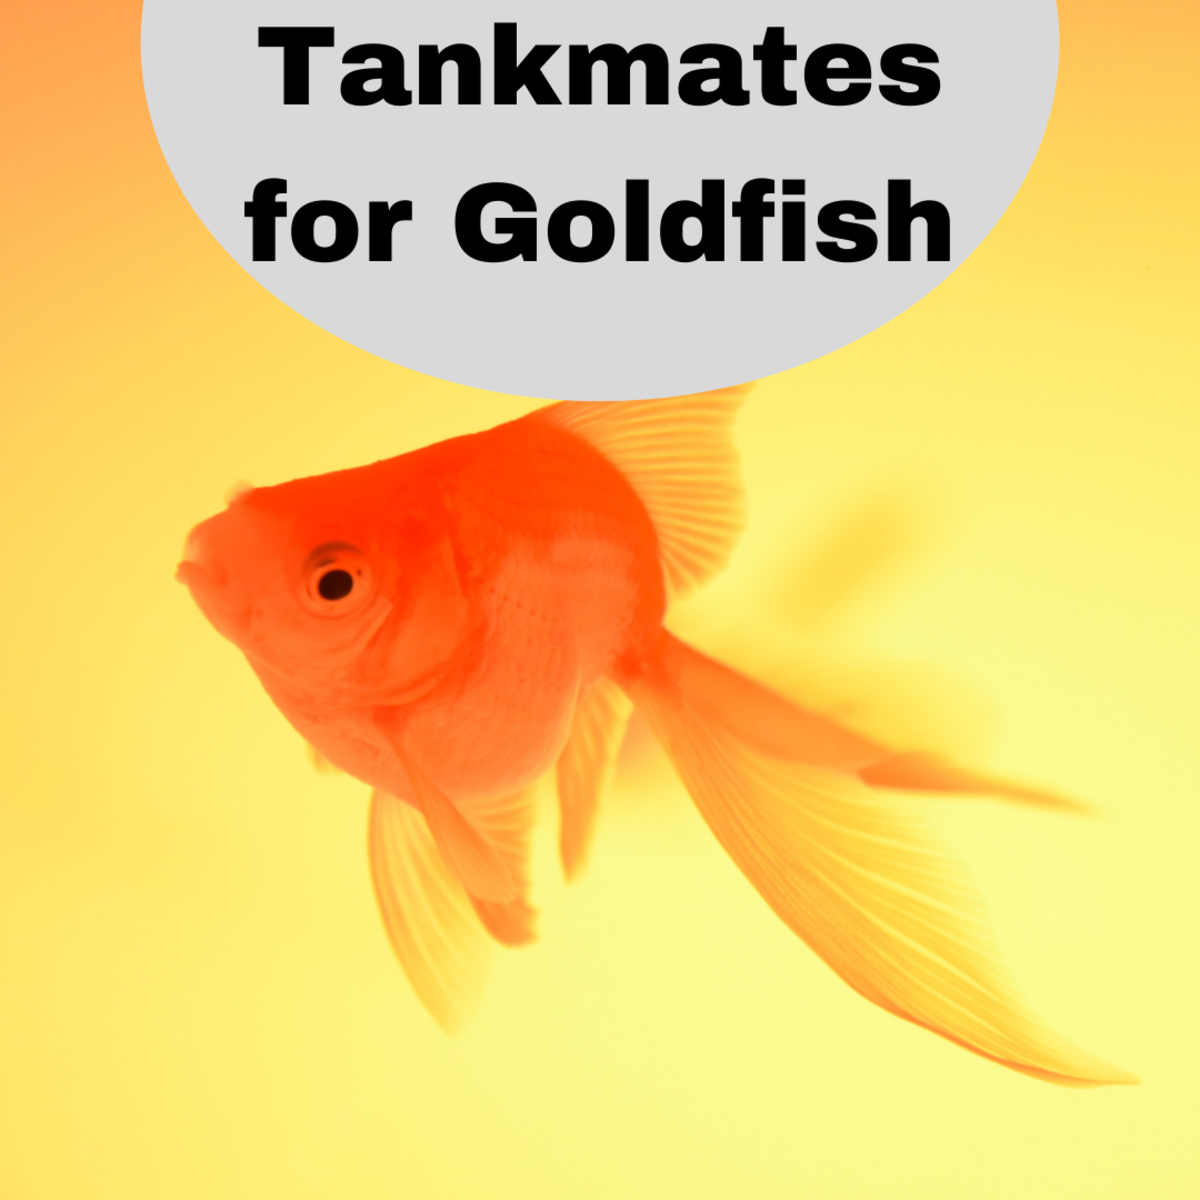 Be careful about what kind of fish you choose to put in a tank with your goldfish.